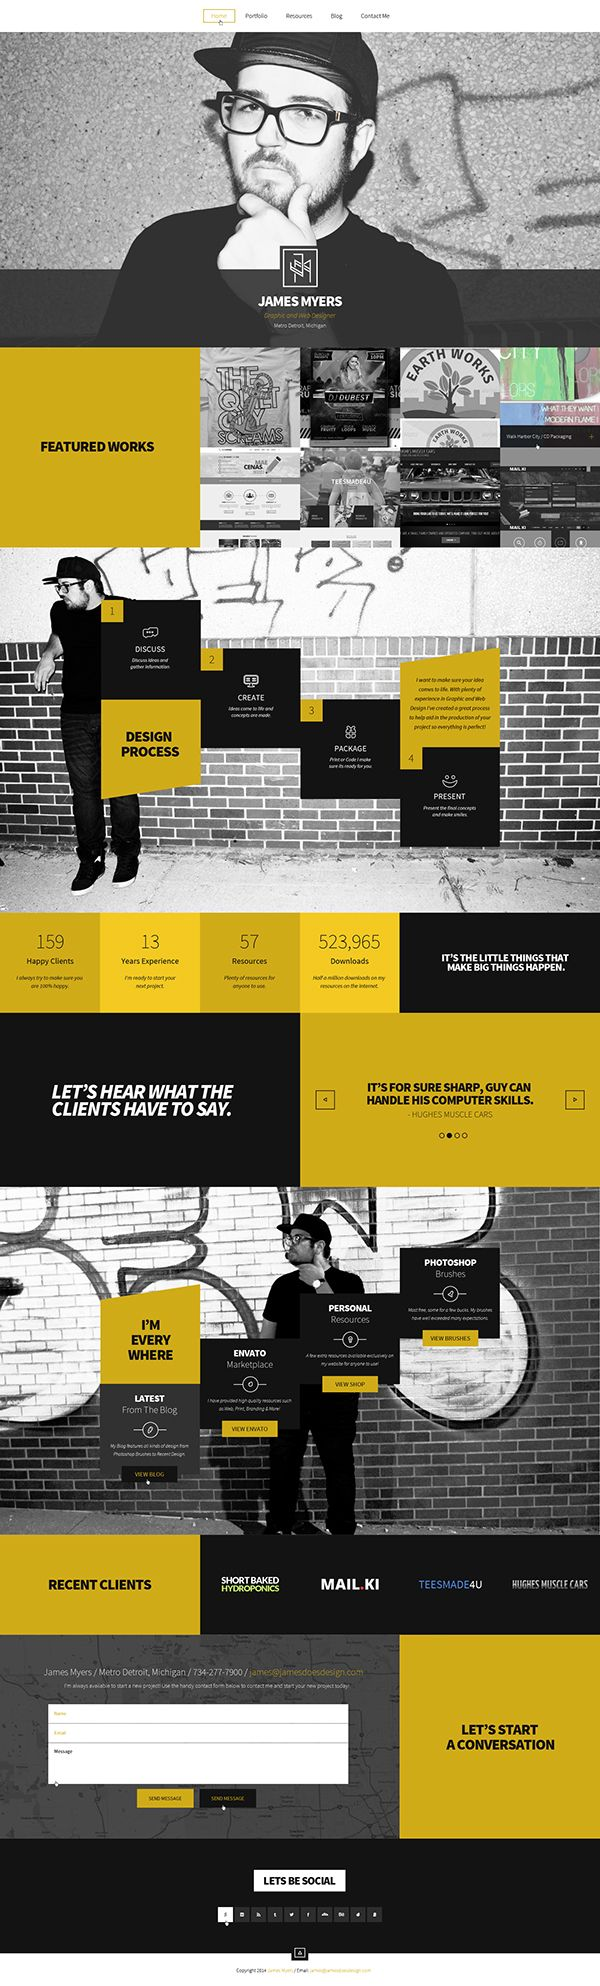 Unique Web Design, James Myers via @kanioris #WebDesign #Design